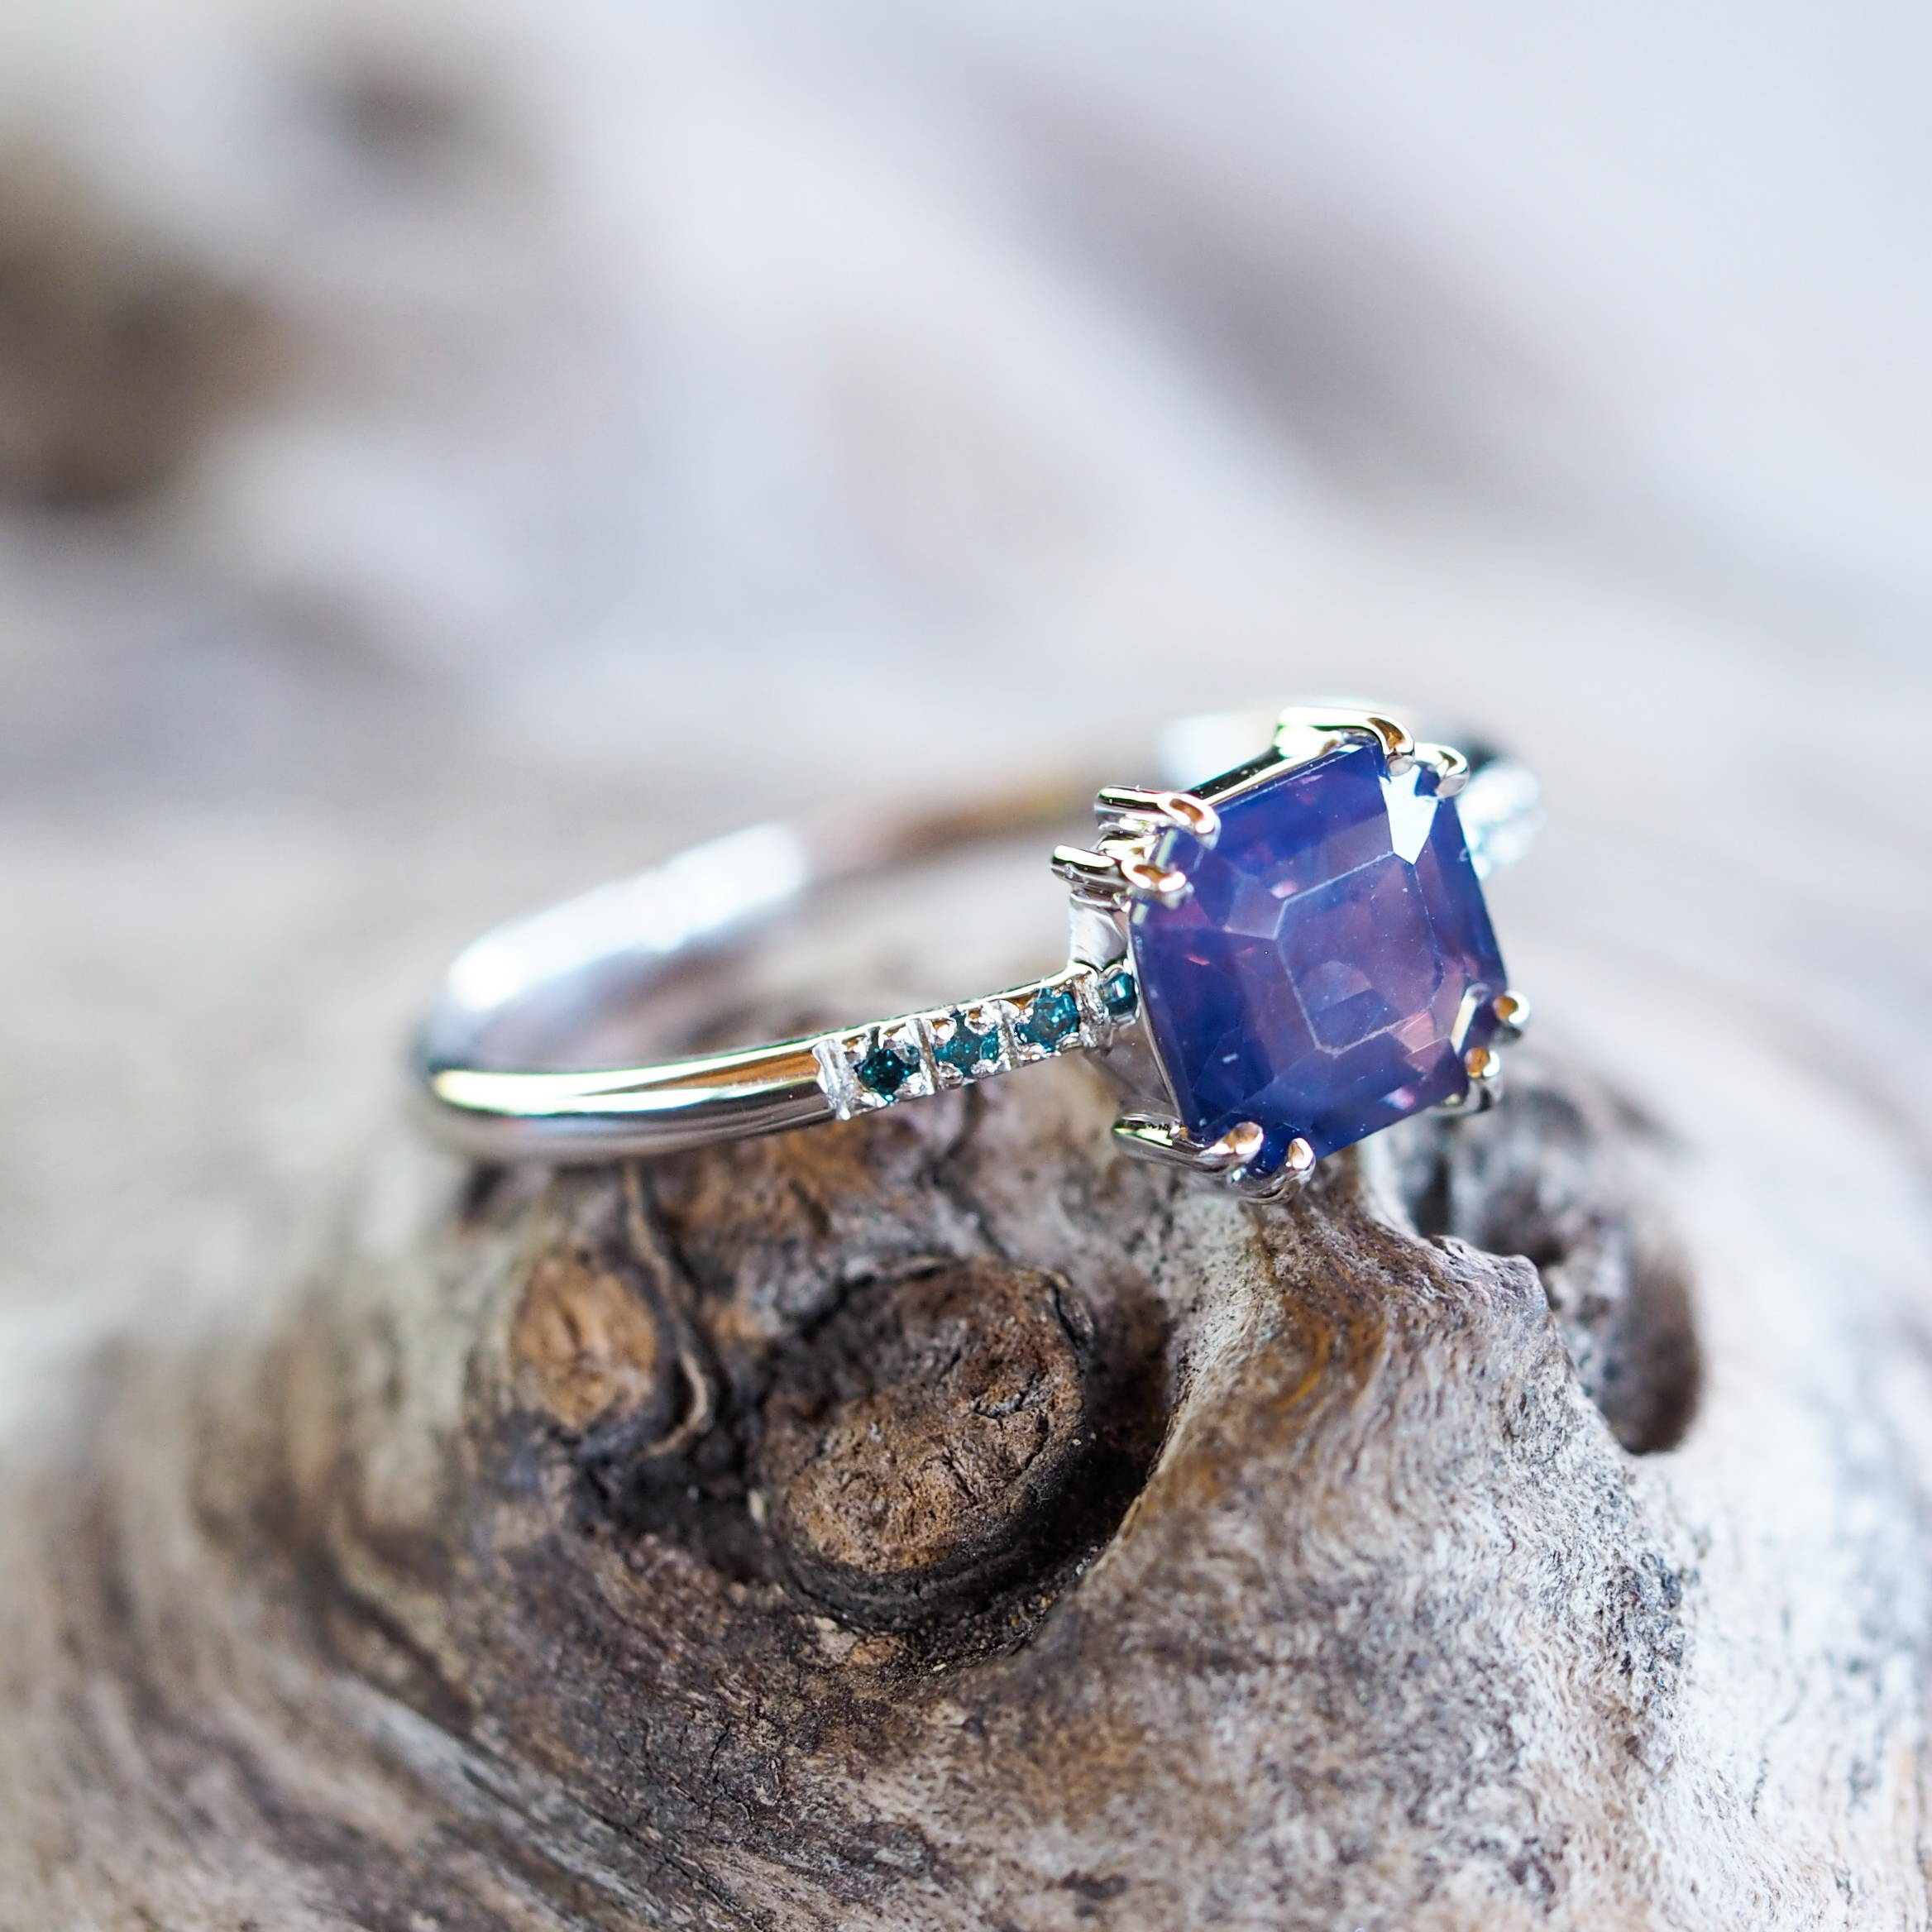 A Custom Bicolor Ceylon Sapphire Ring that can be customized with yellow gold, white gold, or rose gold.